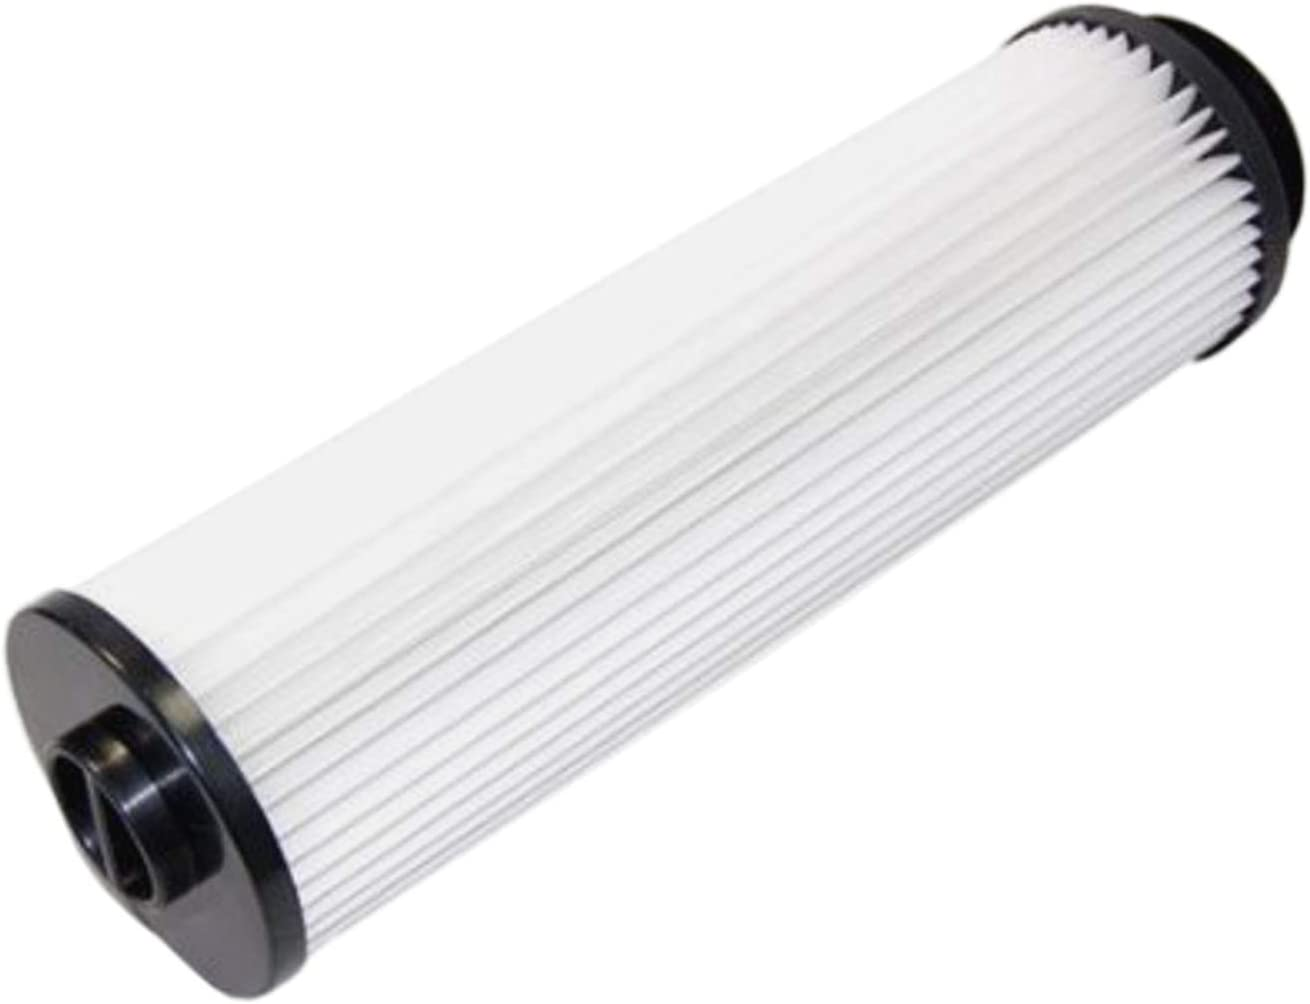 Turbo Series Bagless Vacuum 2-Pack HEPA Filter for Hoover EmPower 43611042